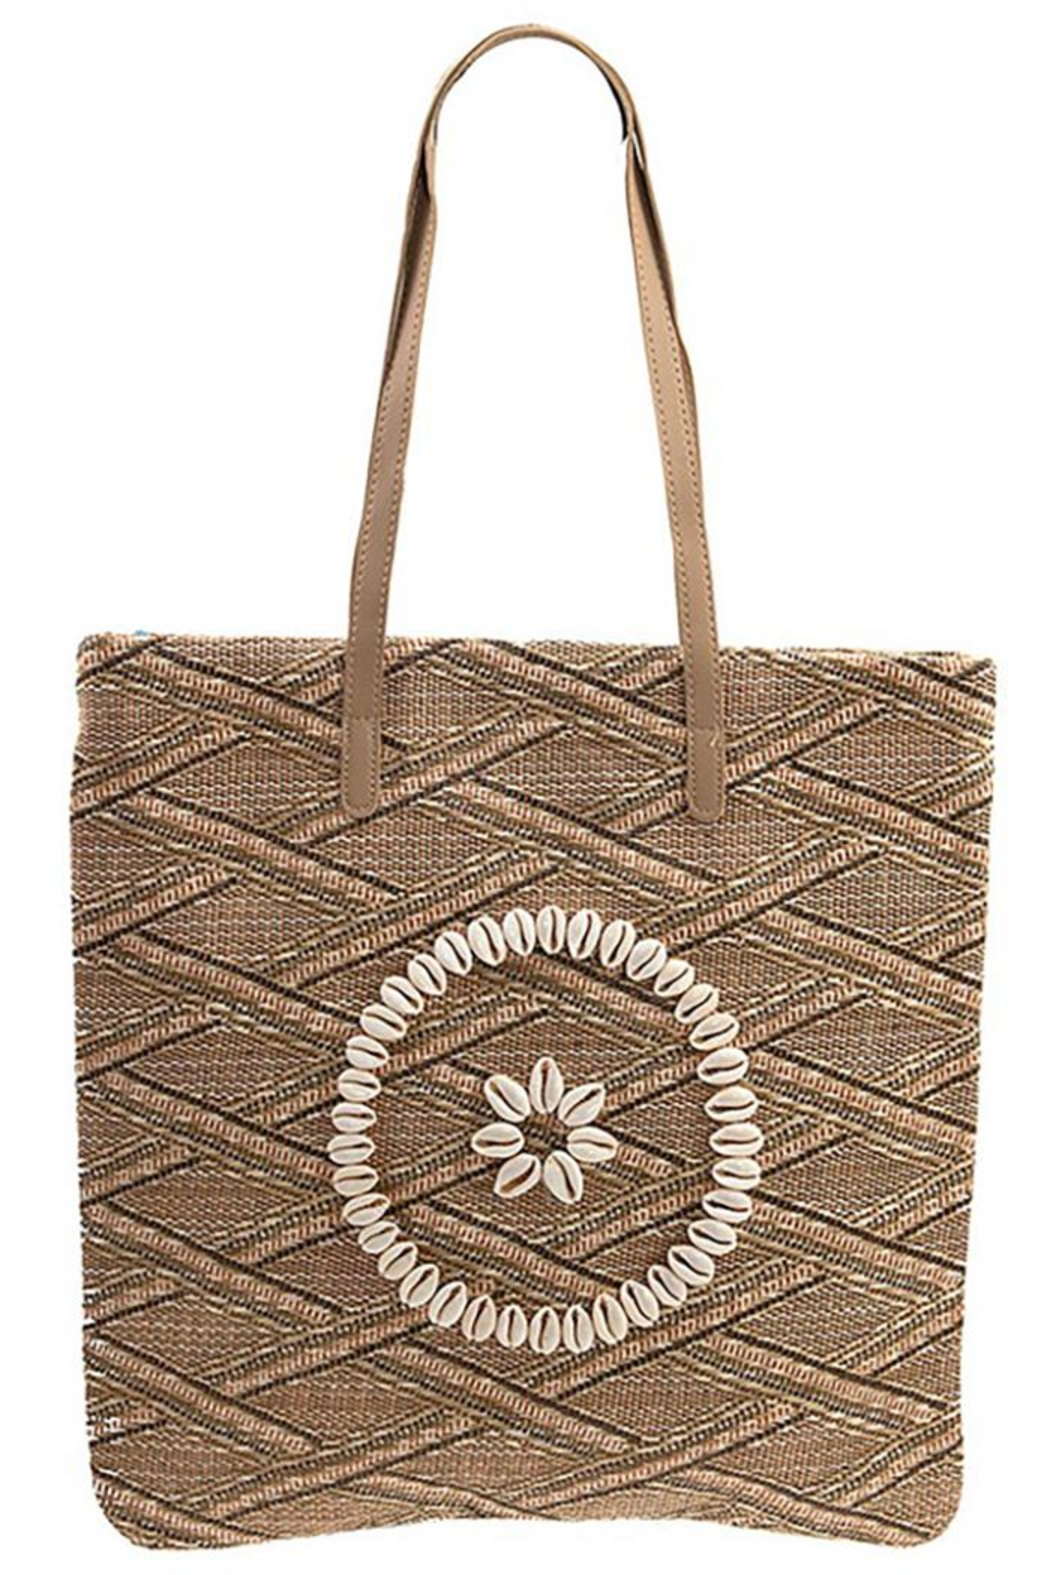 Andrea Bijoux Woven Pattern Shell Accent Tote Bag - Main Image